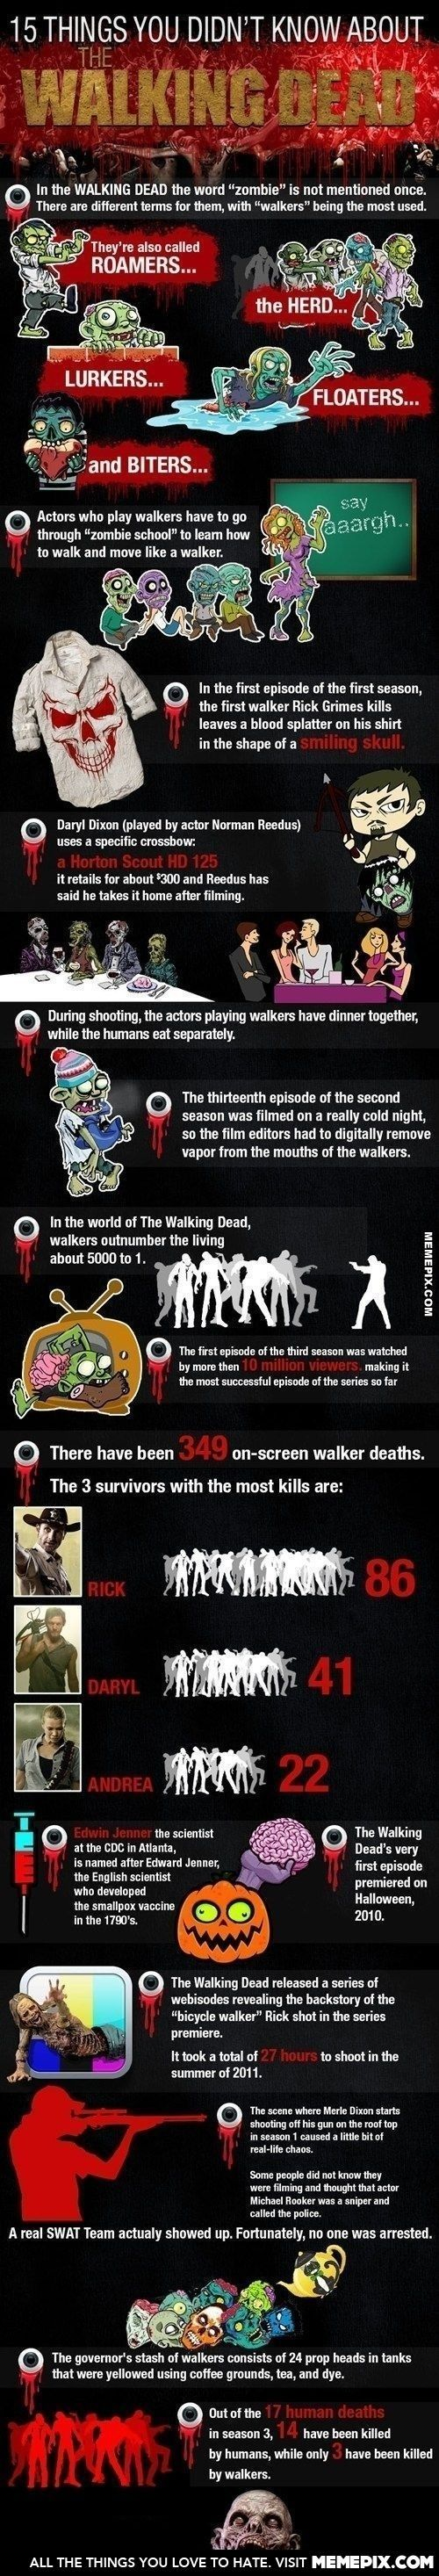 <b>This chart will change the way you look at walkers.</b> Also, you can own a Daryl Dixon crossbow for $300.